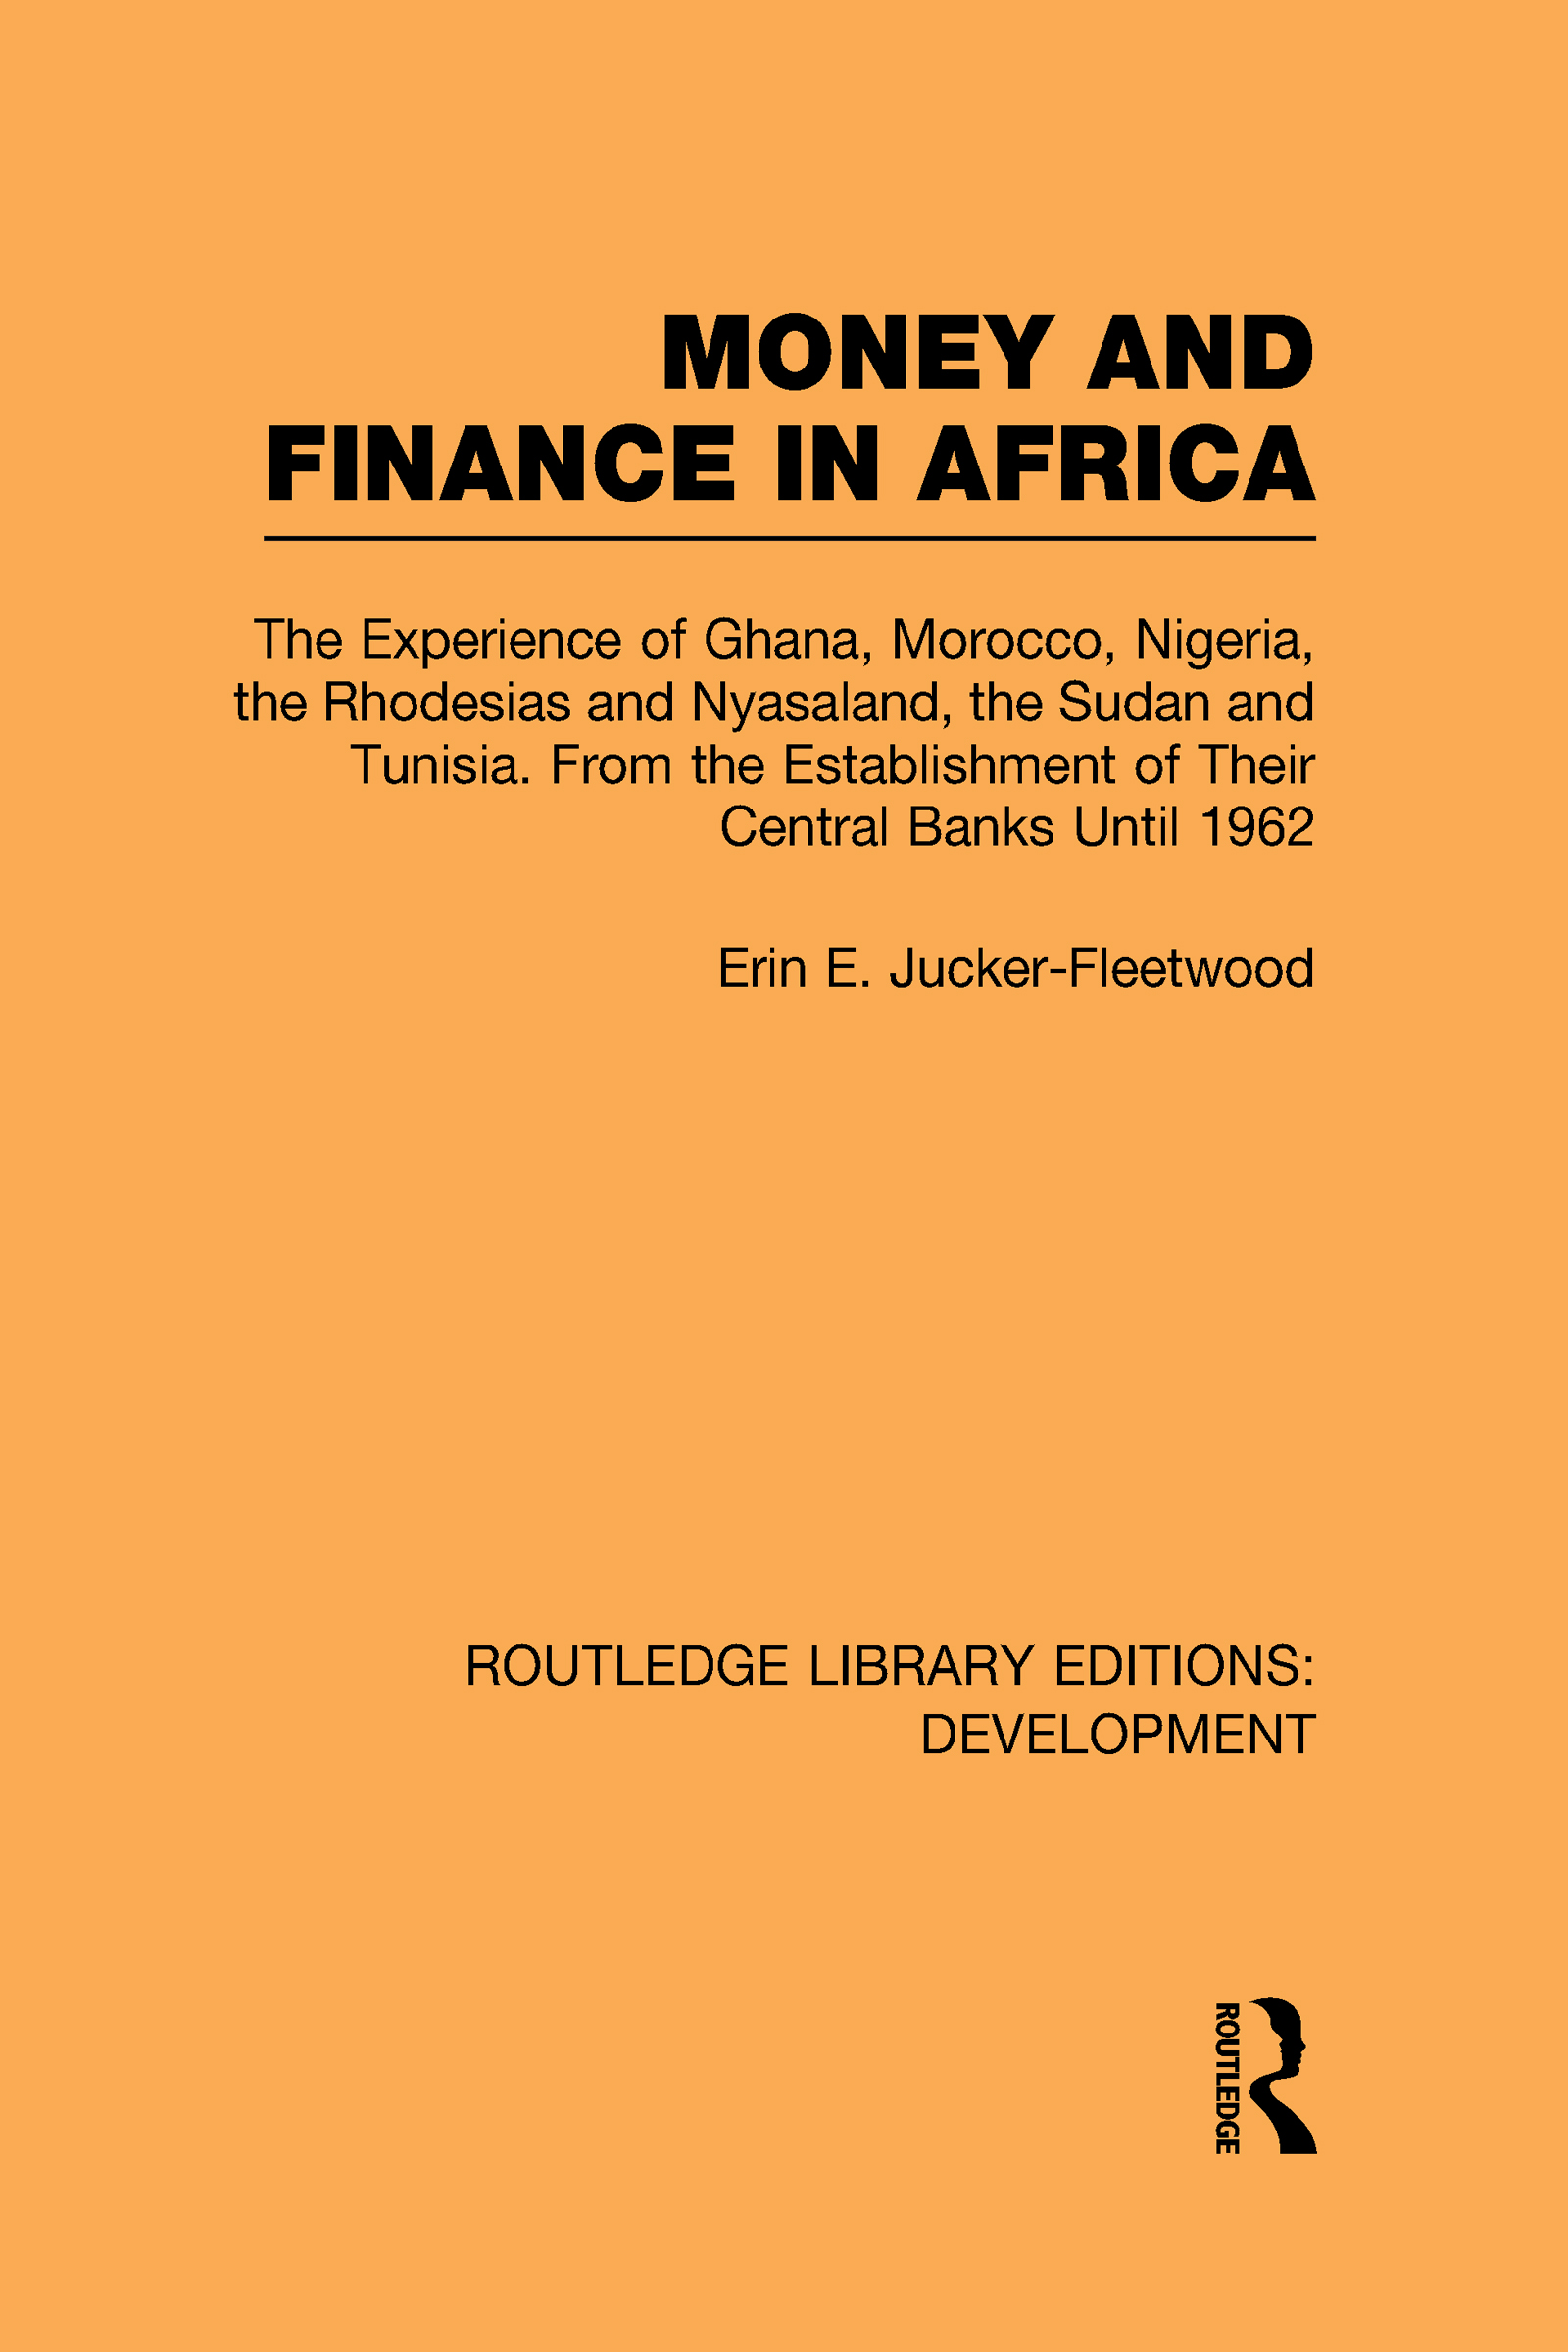 Money and Finance in Africa: The Experience of Ghana, Morocco, Nigeria, the Rhodesias and Nyasaland, the Sudan and Tunisia from the establishment of their central banks until 1962 (Hardback) book cover